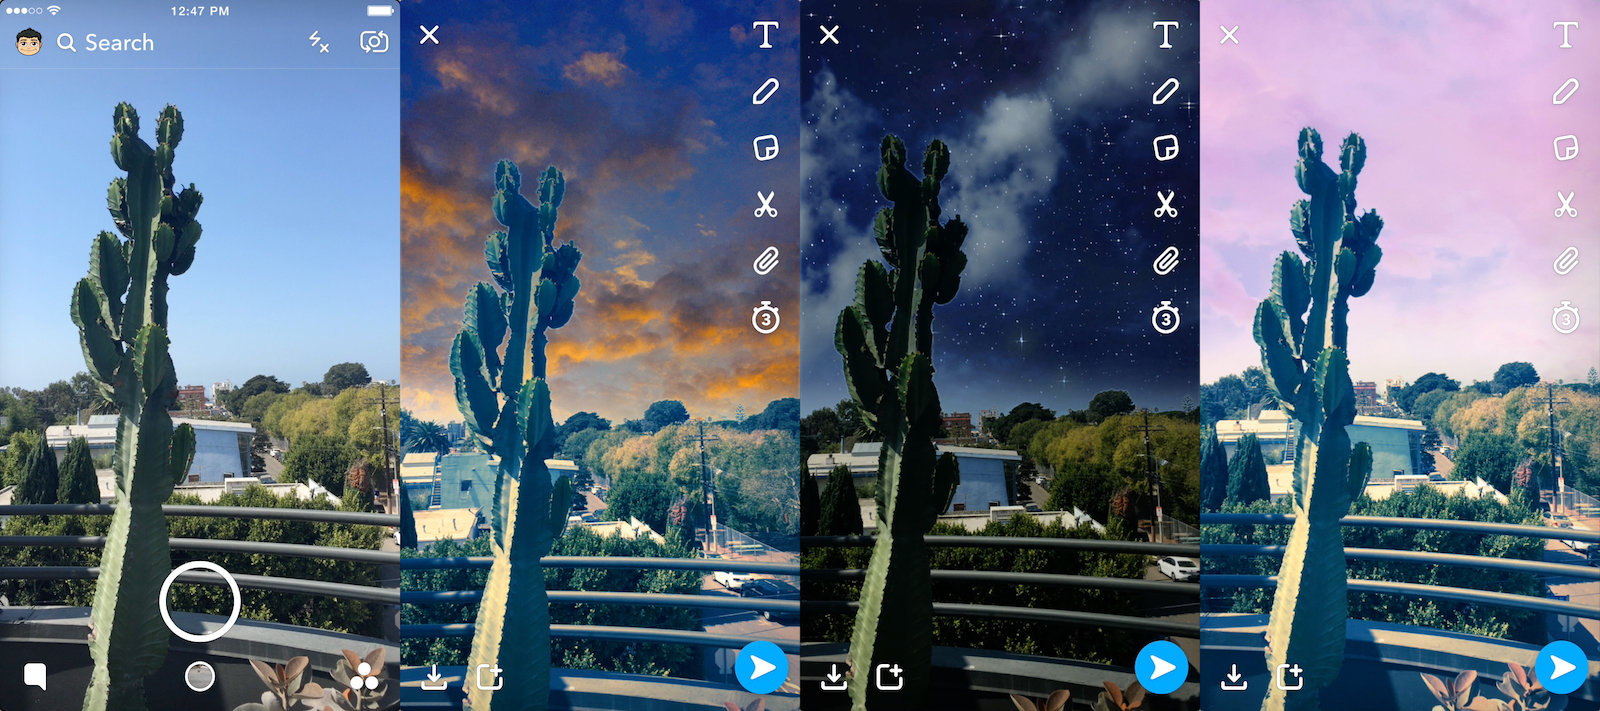 Snapchats new filters make your photo backgrounds look surreal 1600x711